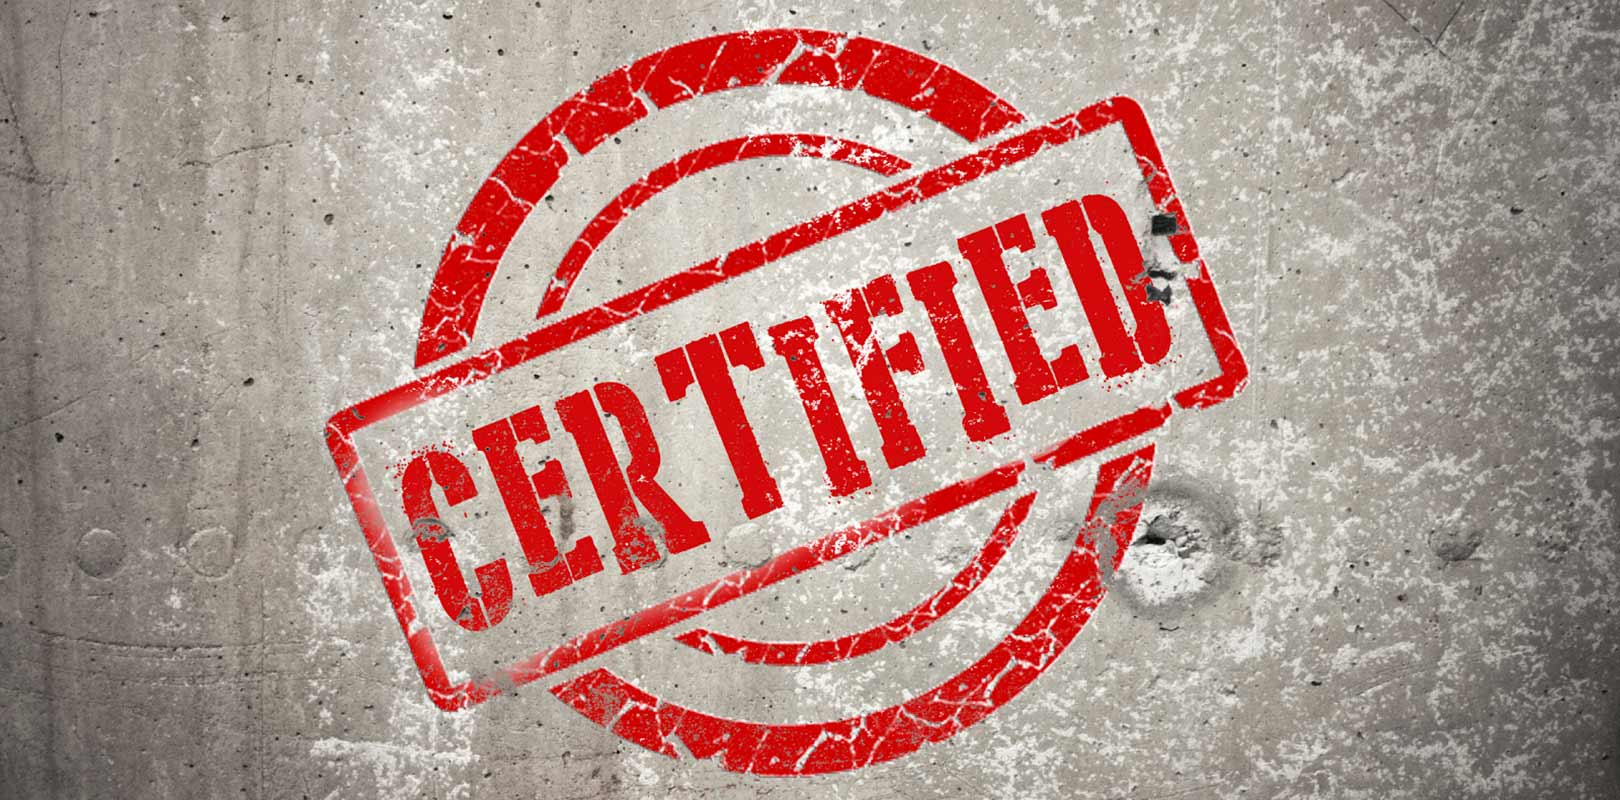 Can an Author Increase Their Impact with a Certification Program? I Did!